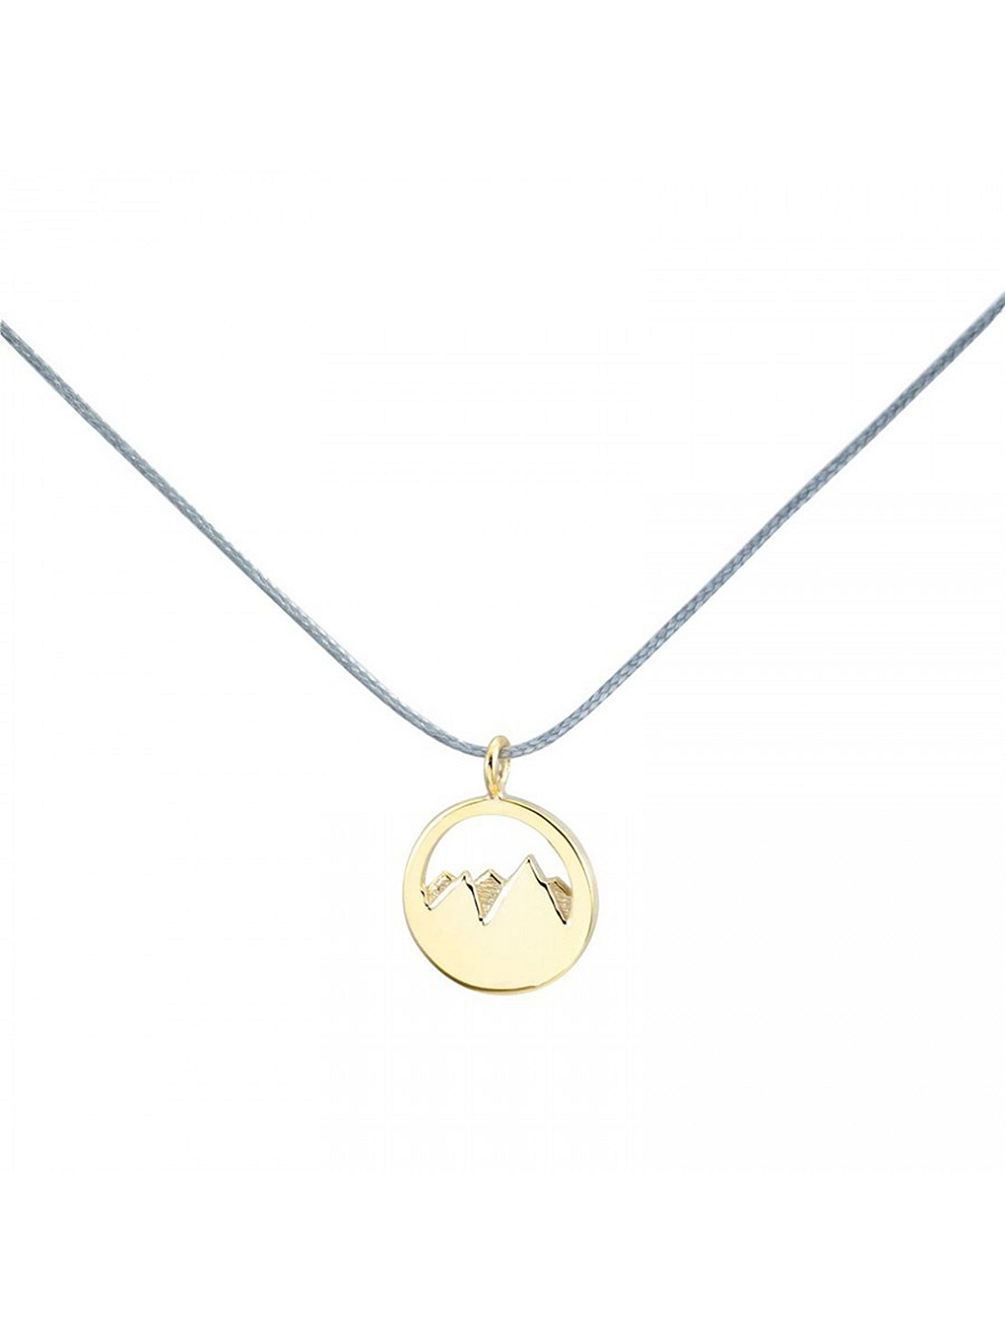 Mountains S Necklace